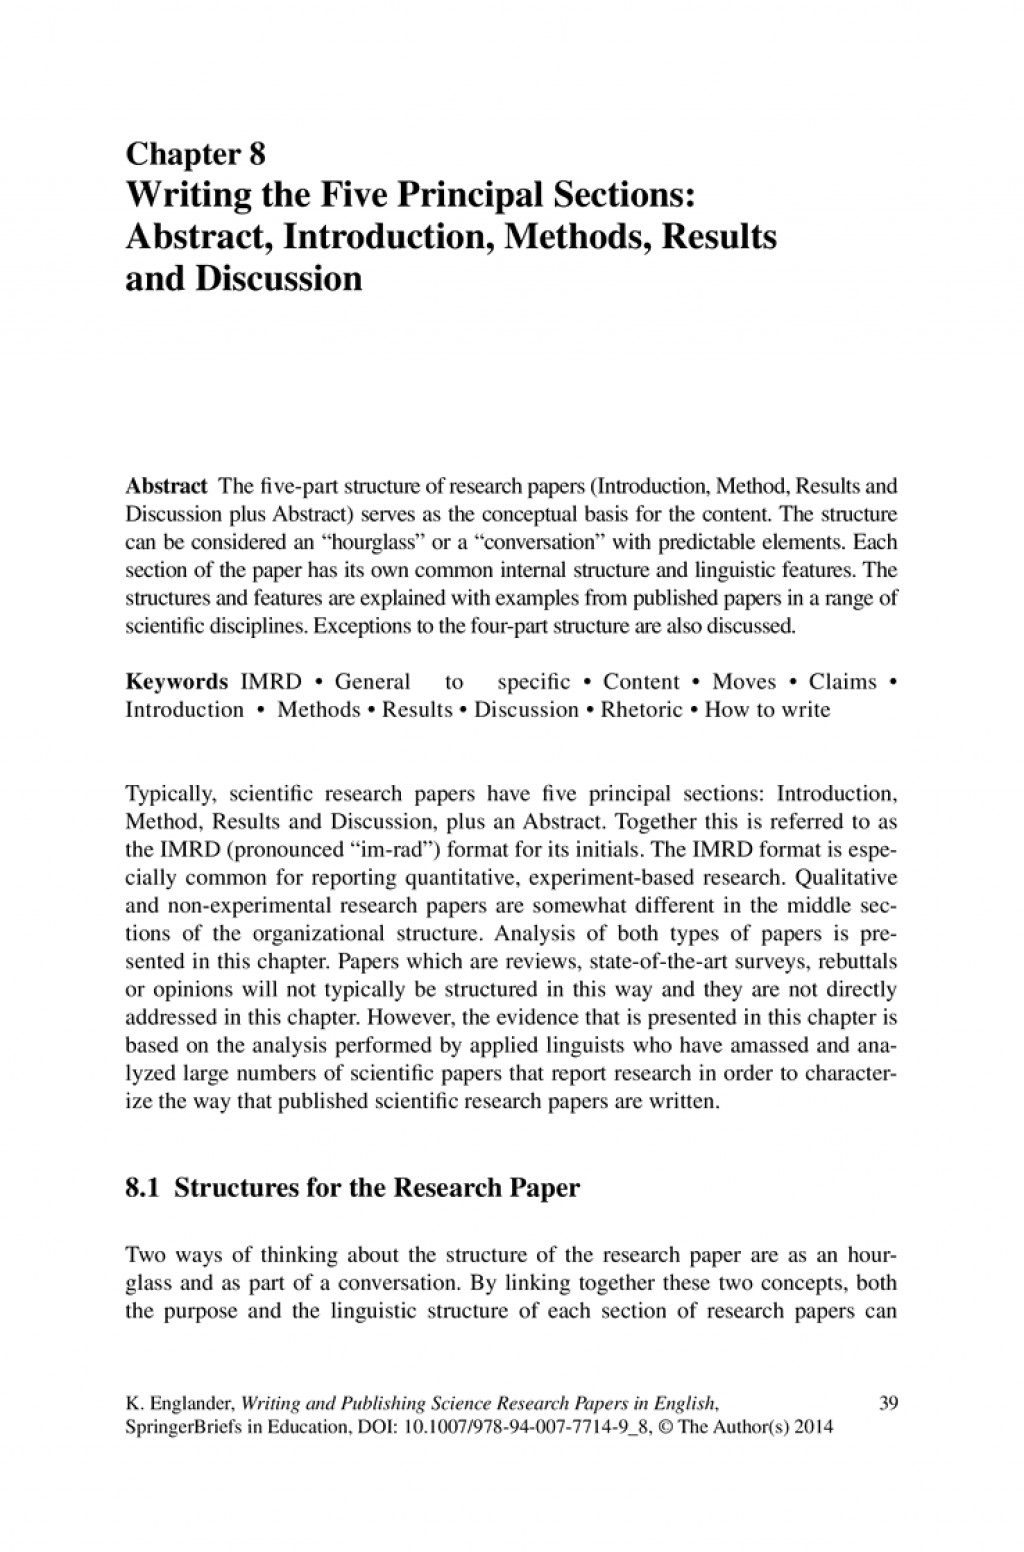 014 Writing The Five Principal Sections Abstract Introduction Methods Results And Discussion Essay Forum L Research Paper Section Of Wonderful Example A Apa Qualitative Large